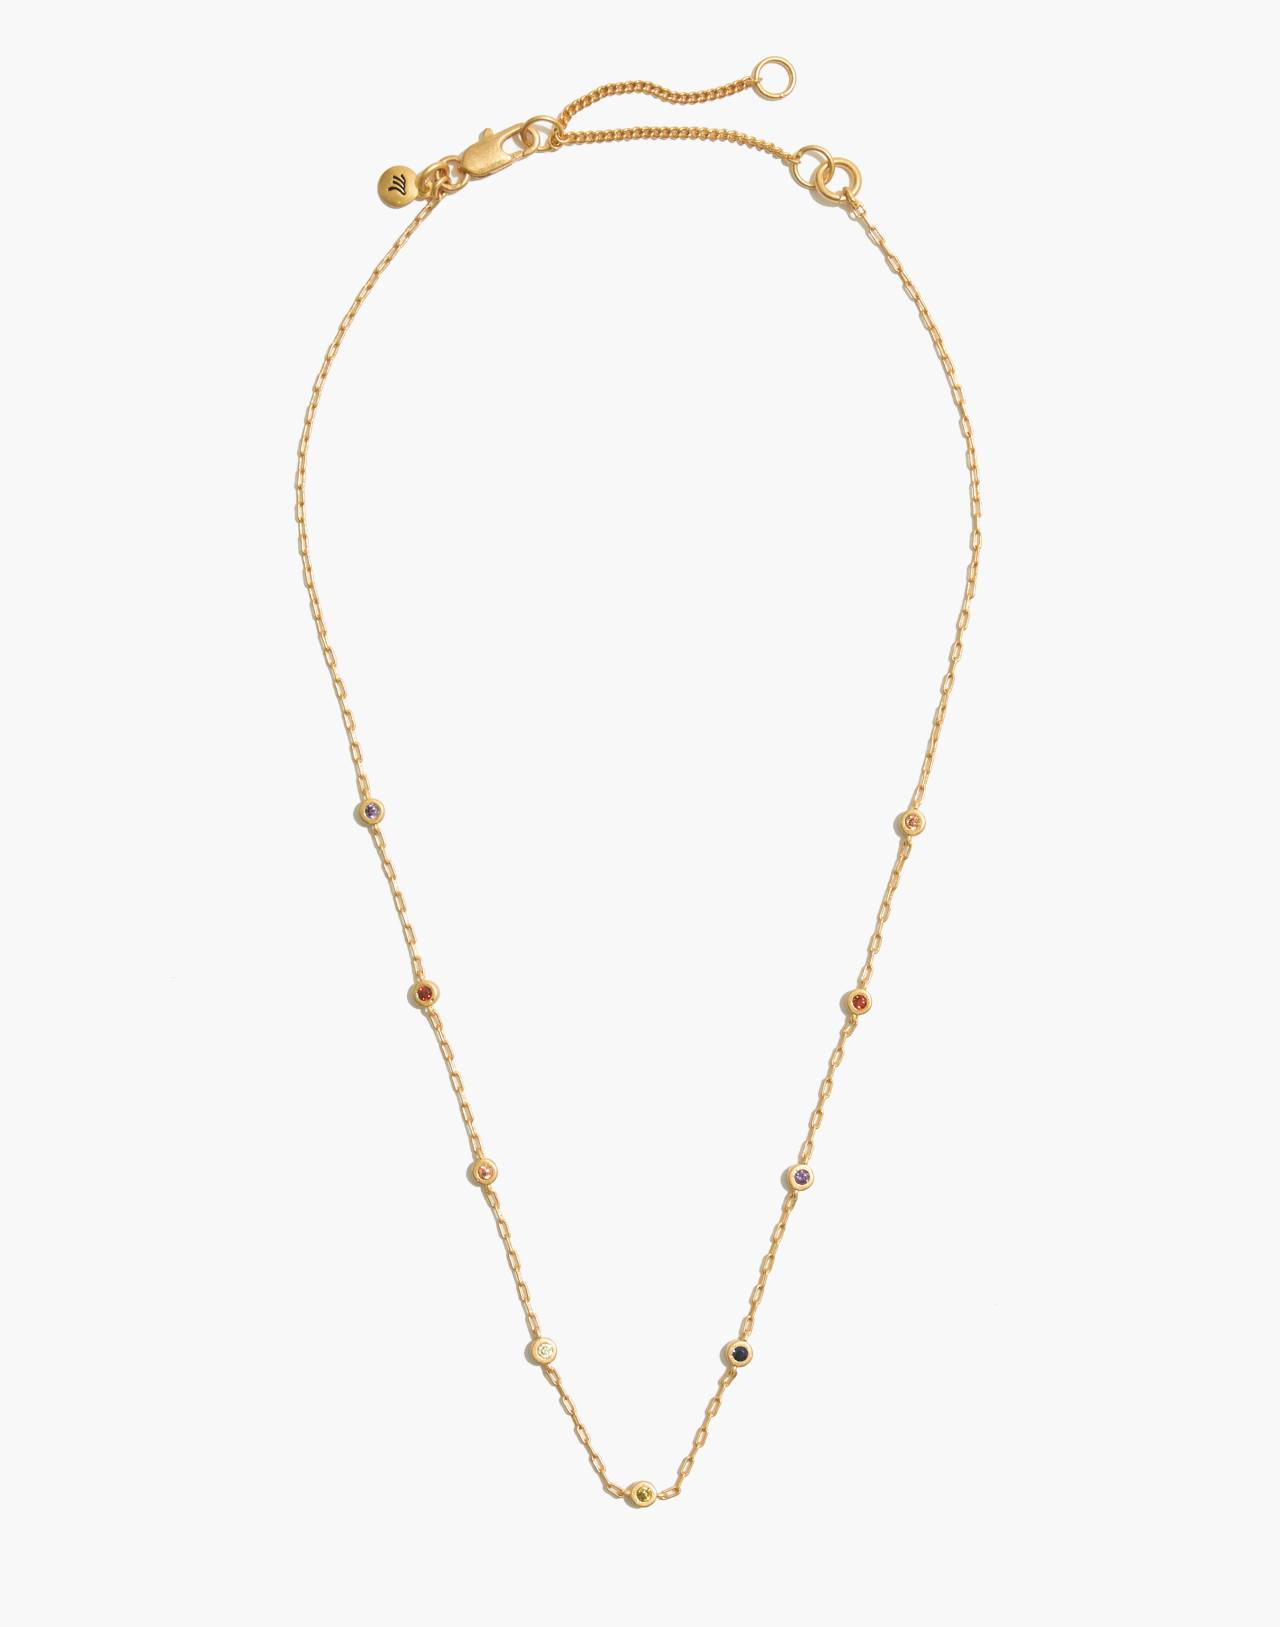 Rainbow Sparkle Necklace in vintage gold image 2